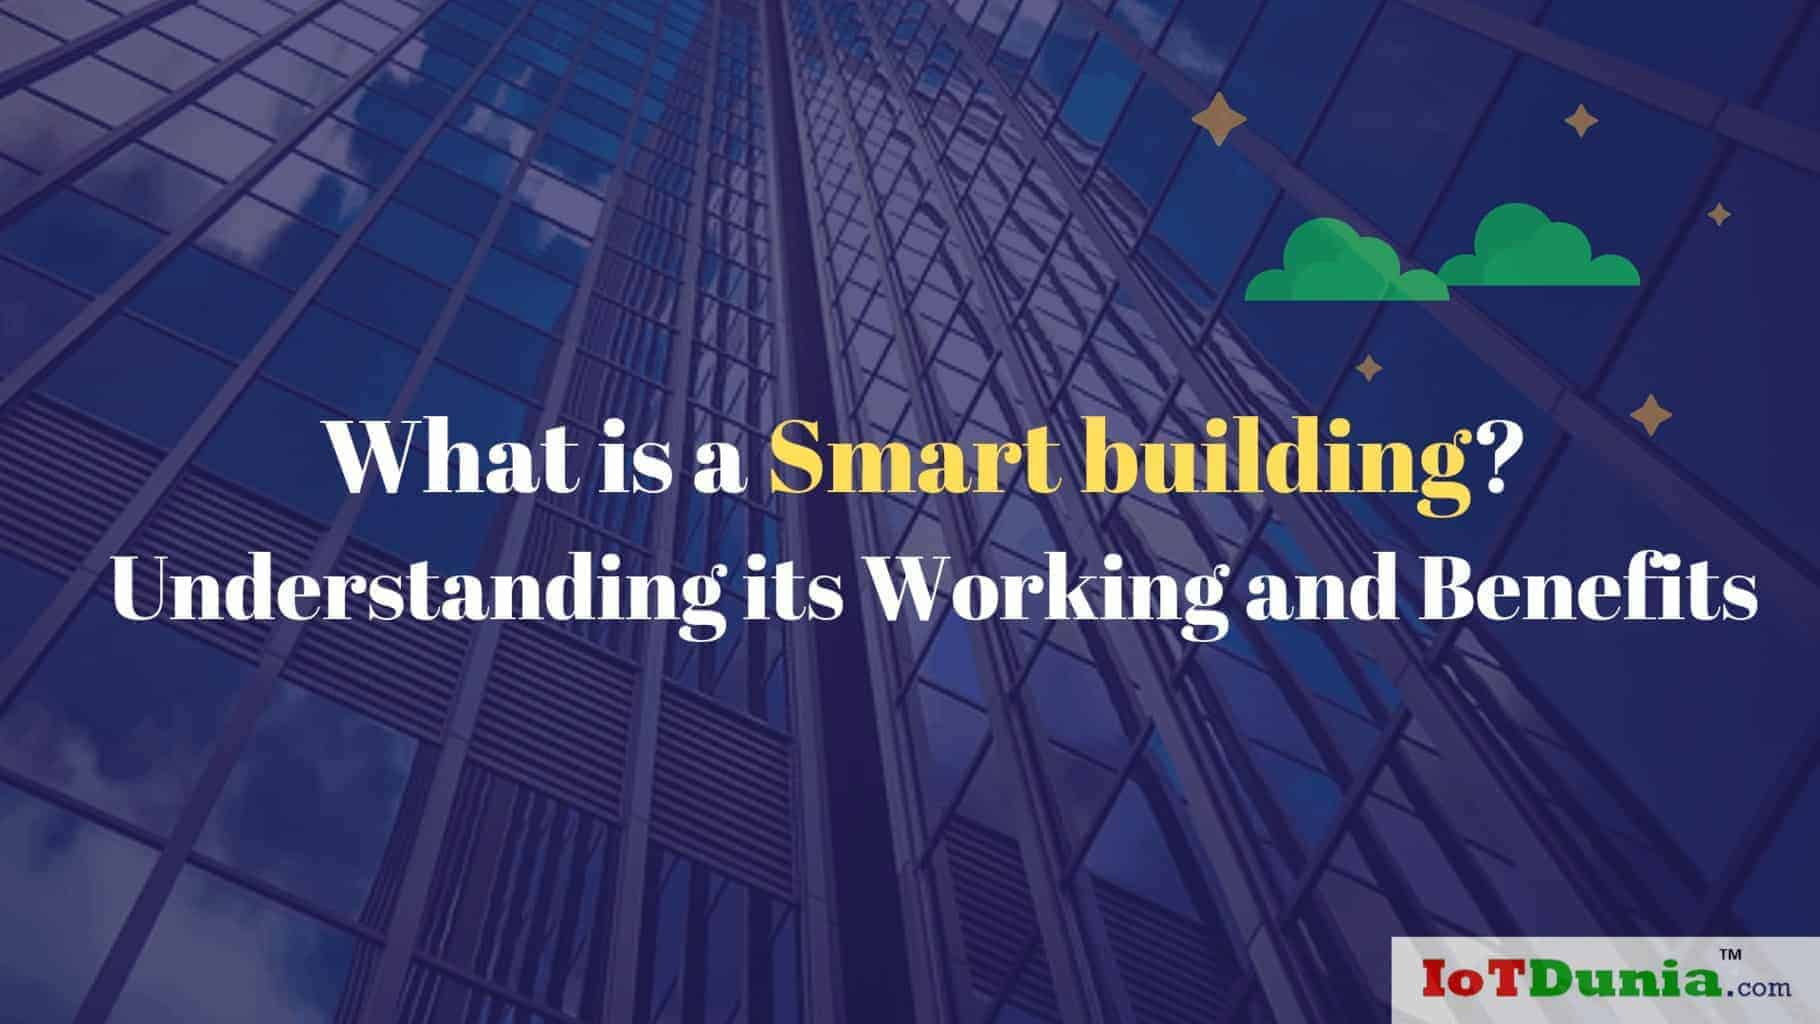 What is Smart building? Understanding its Working and Benefits